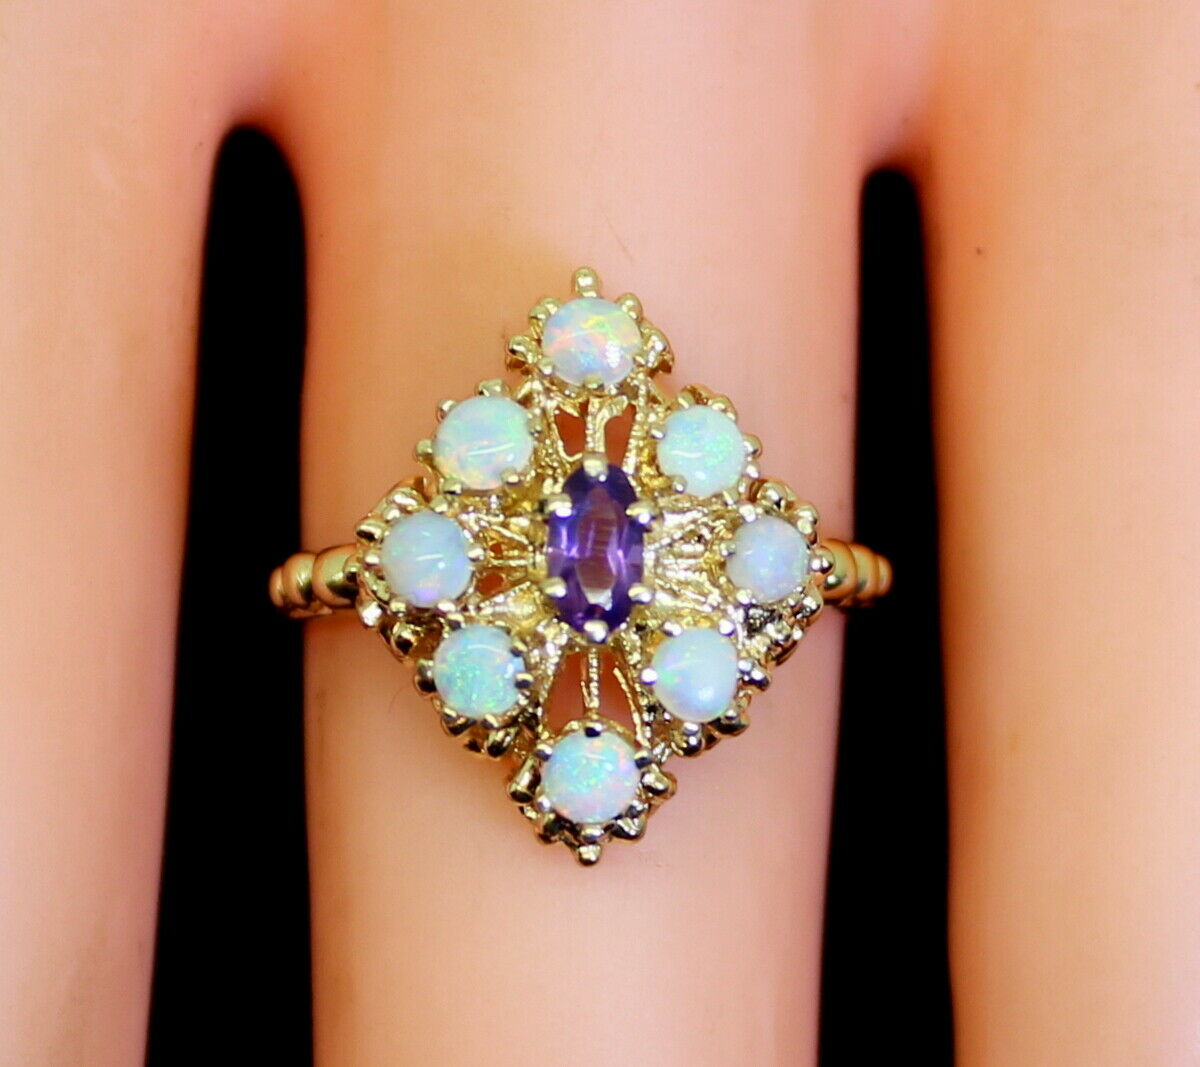 Gorgeous 14K gold 1 Ct Oval Amethyst & Opal Cluster Style Ring Size 7